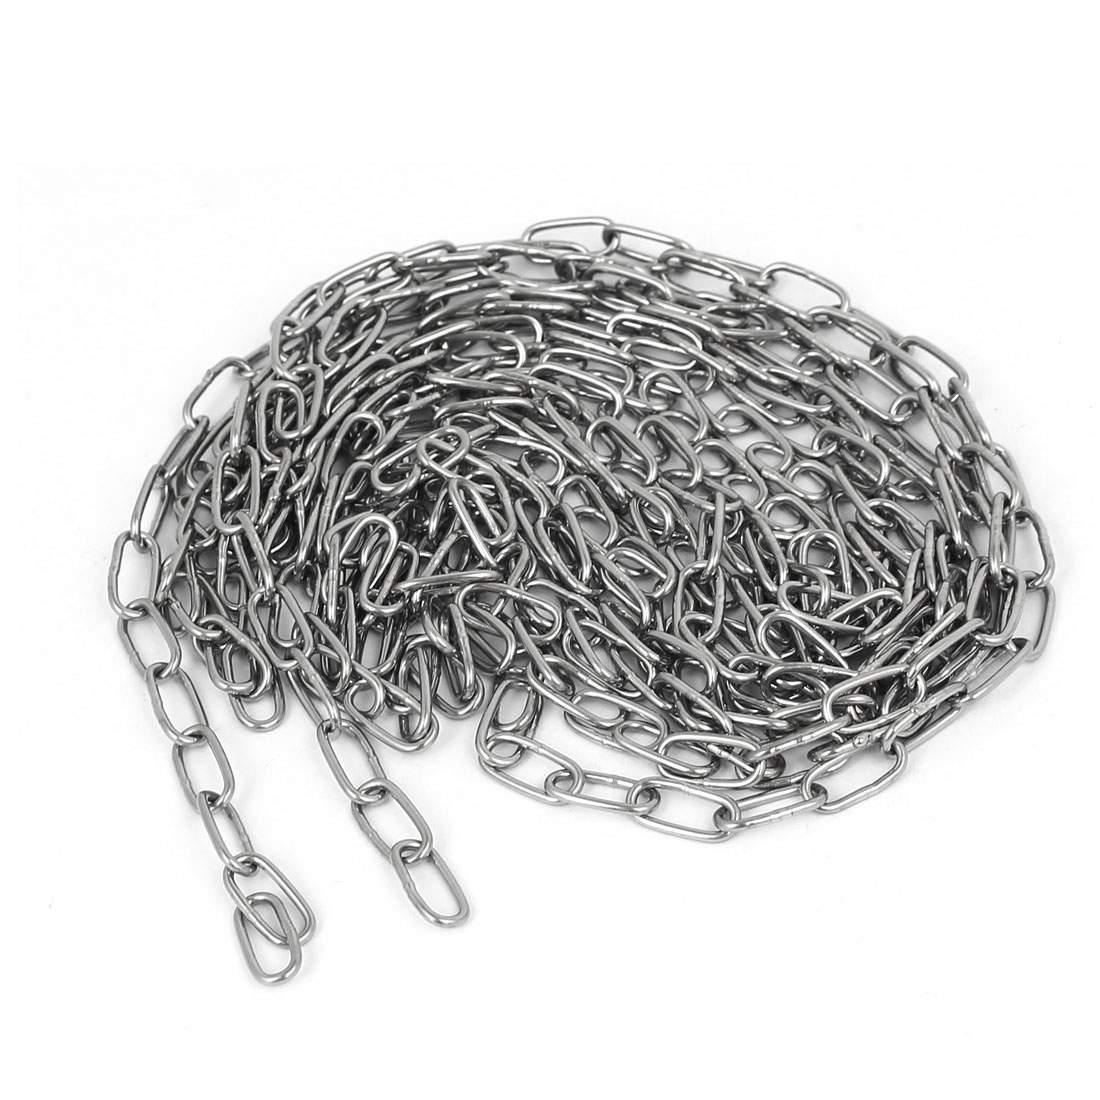 Pet Dog Training Clothes Hanging 304 Stainless Steel Coil Chain M1.2x10Ft